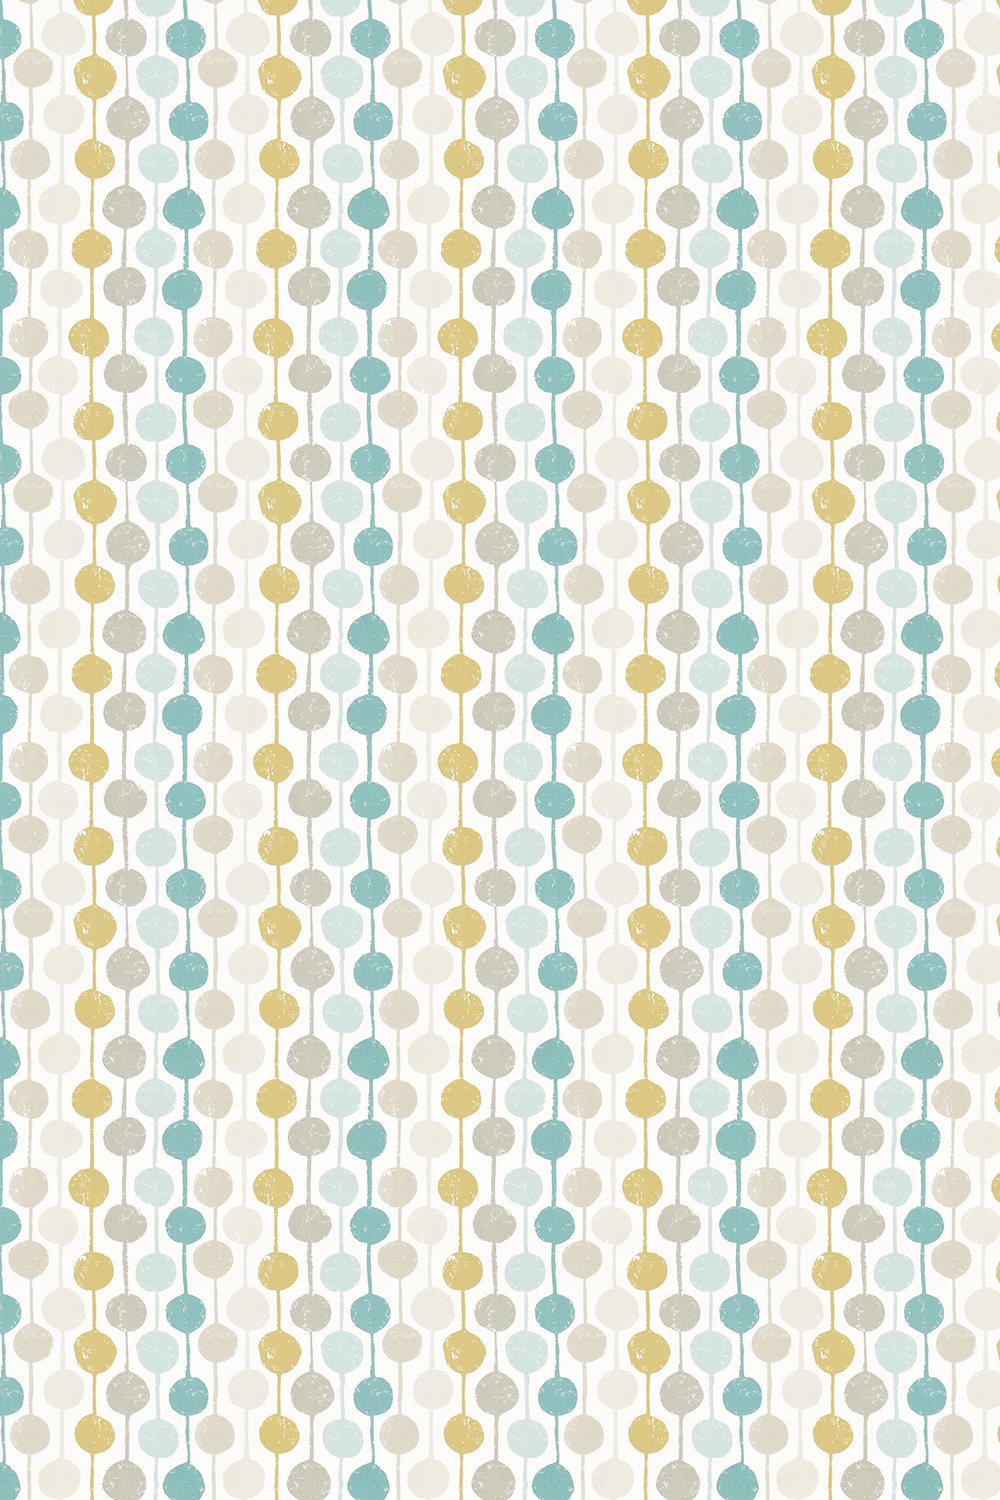 Taimi Fabric - Seaglass, Chalk and Honey - by Scion